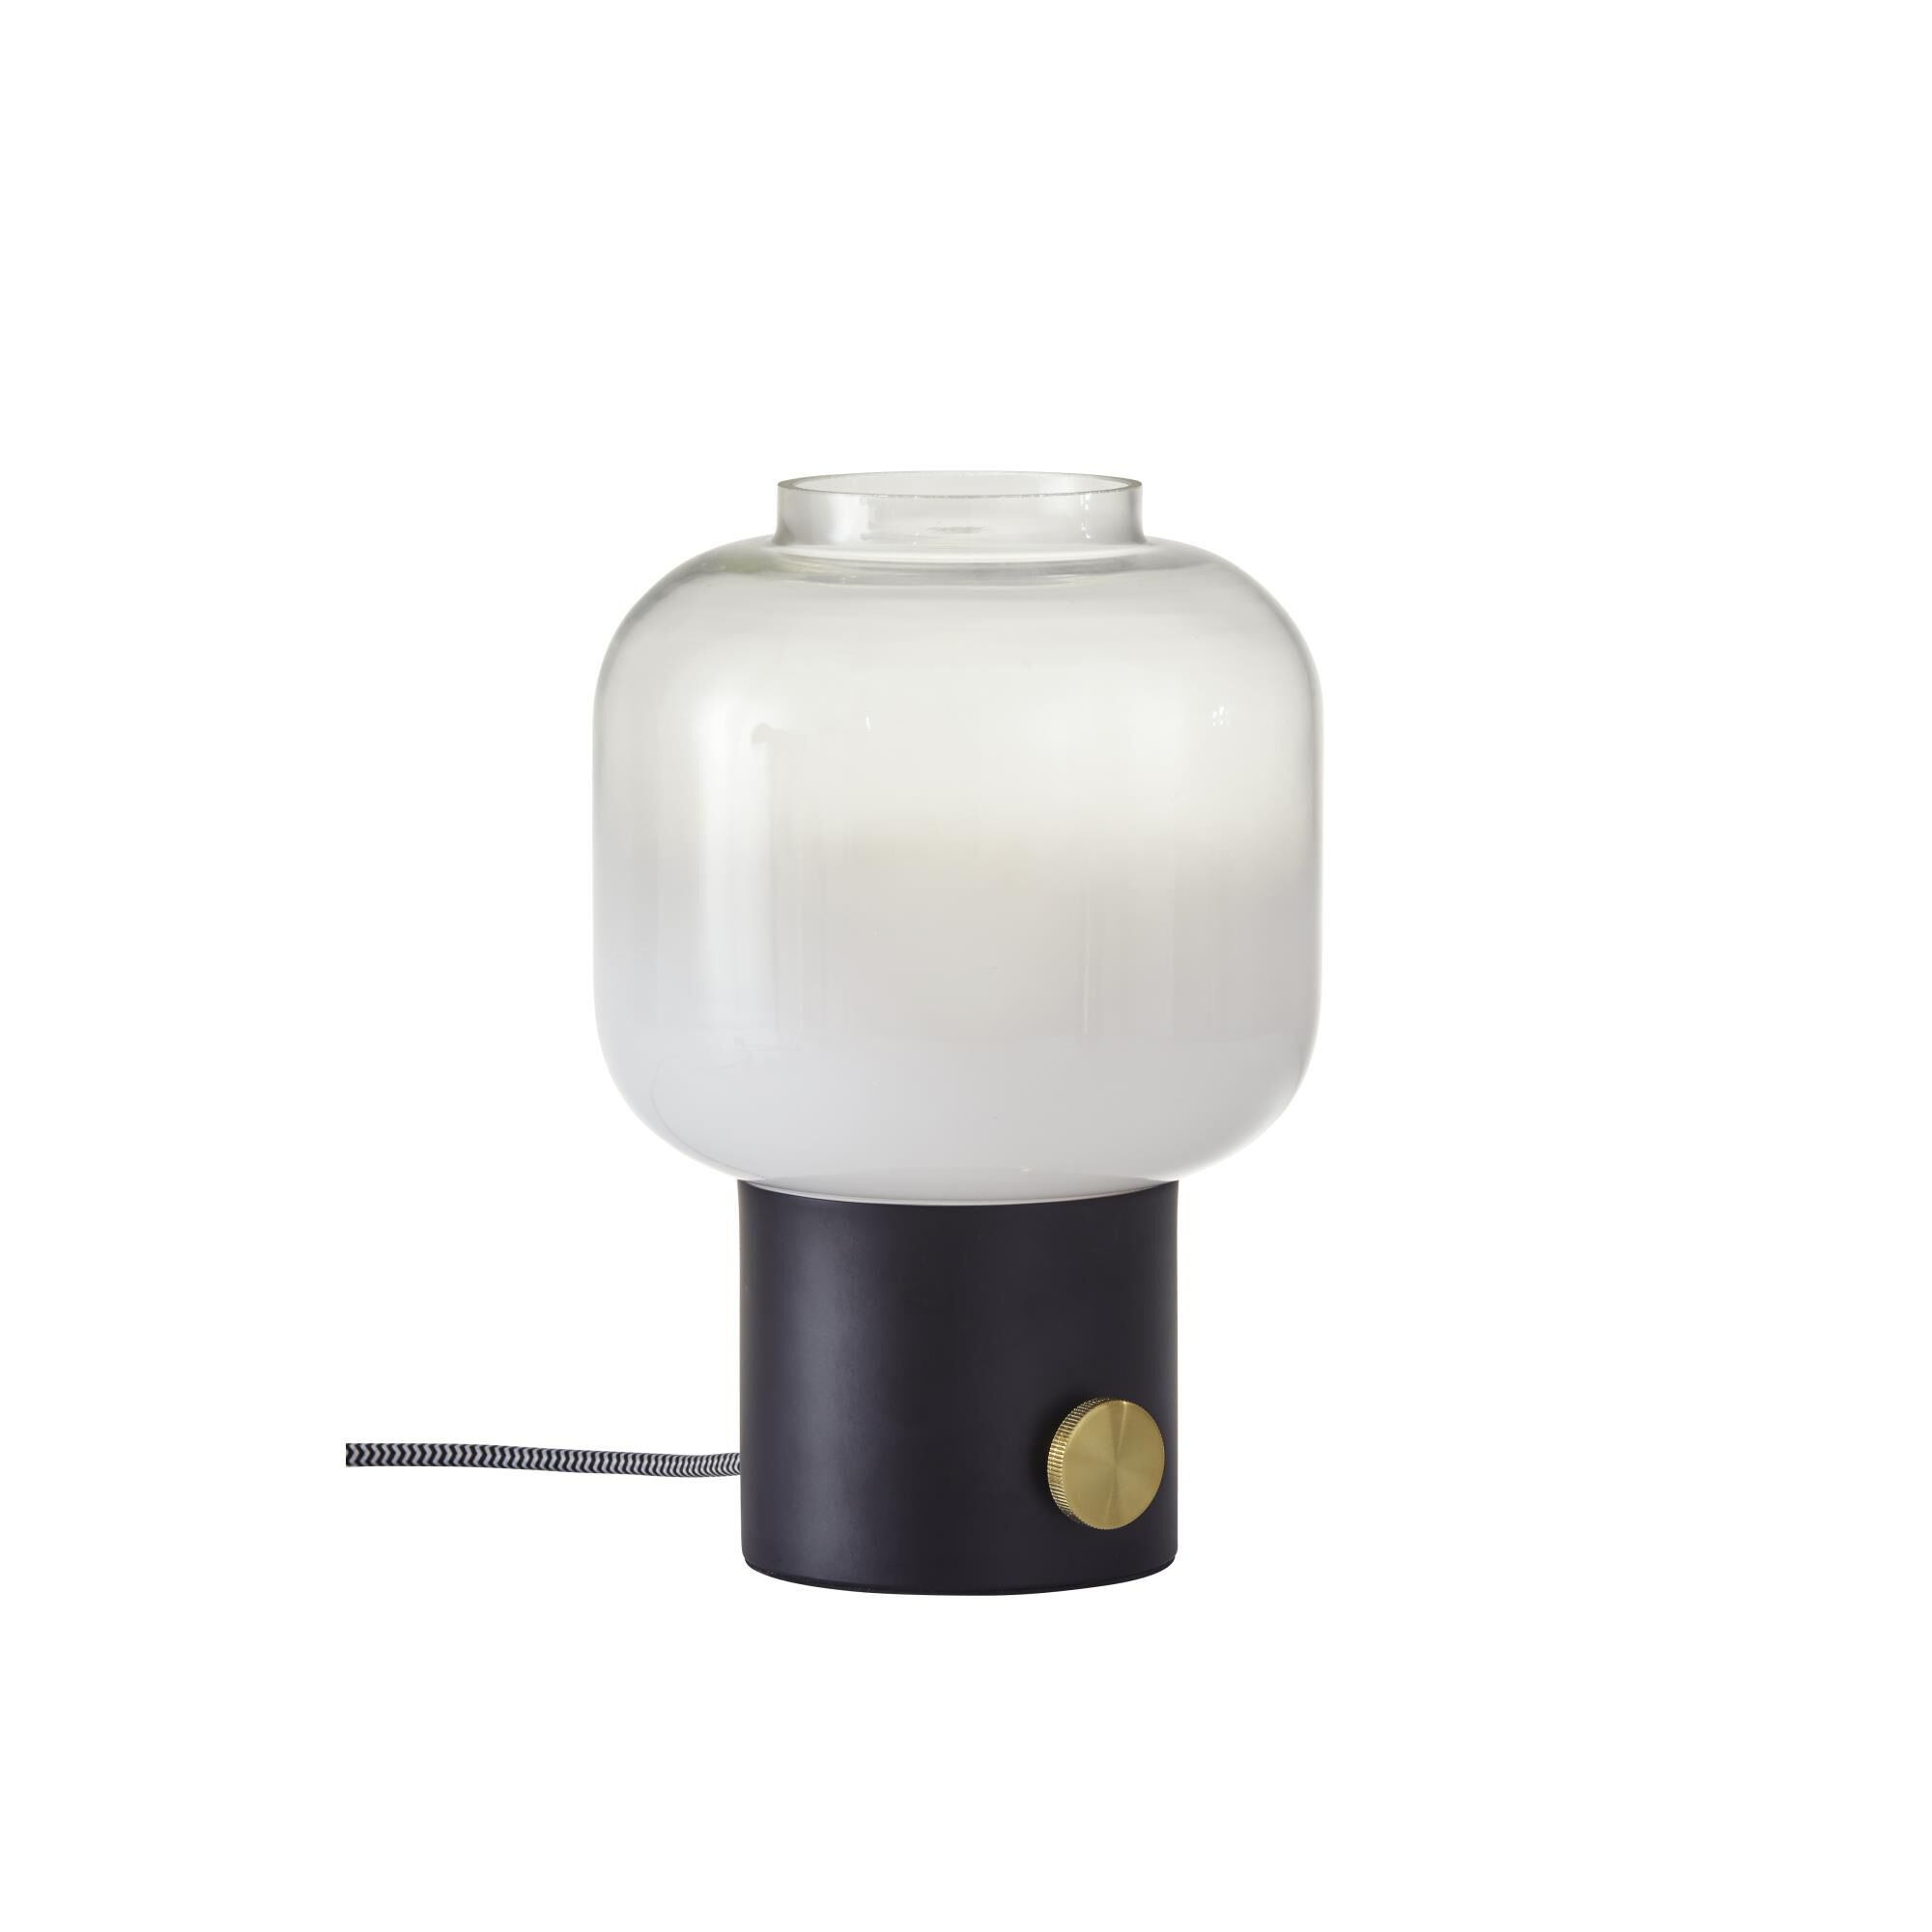 Adesso Lewis Accent Lamp Lewis - 6027-01 - Transitional Accent Lamp